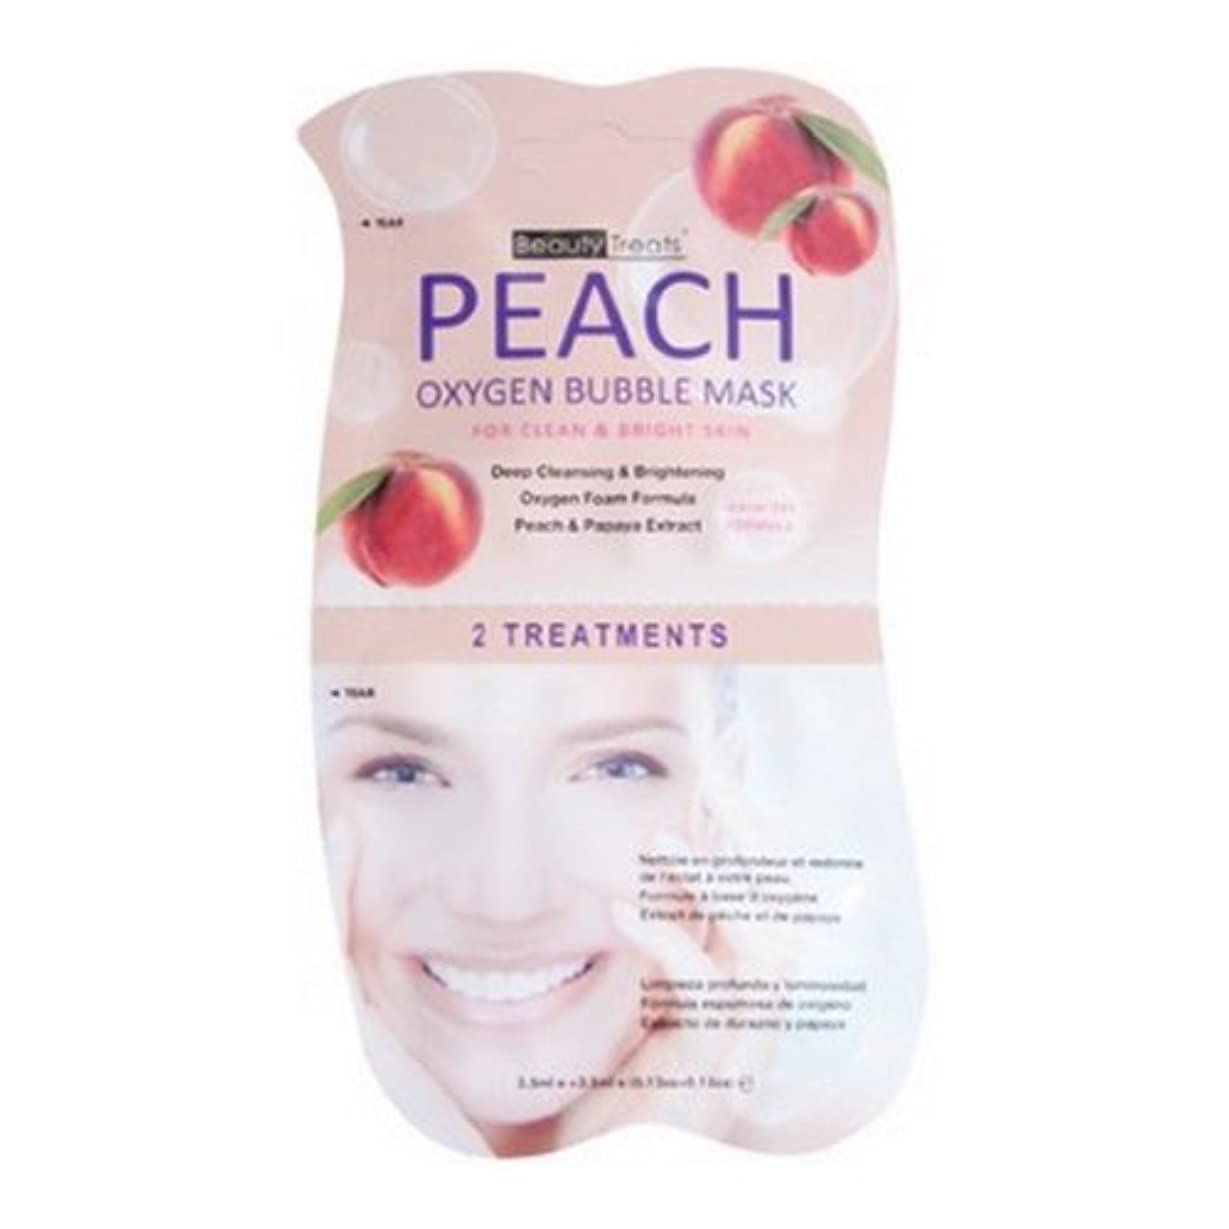 どれスリラー汚染された(3 Pack) BEAUTY TREATS Peach Oxygen Bubble Mask - Peach (並行輸入品)